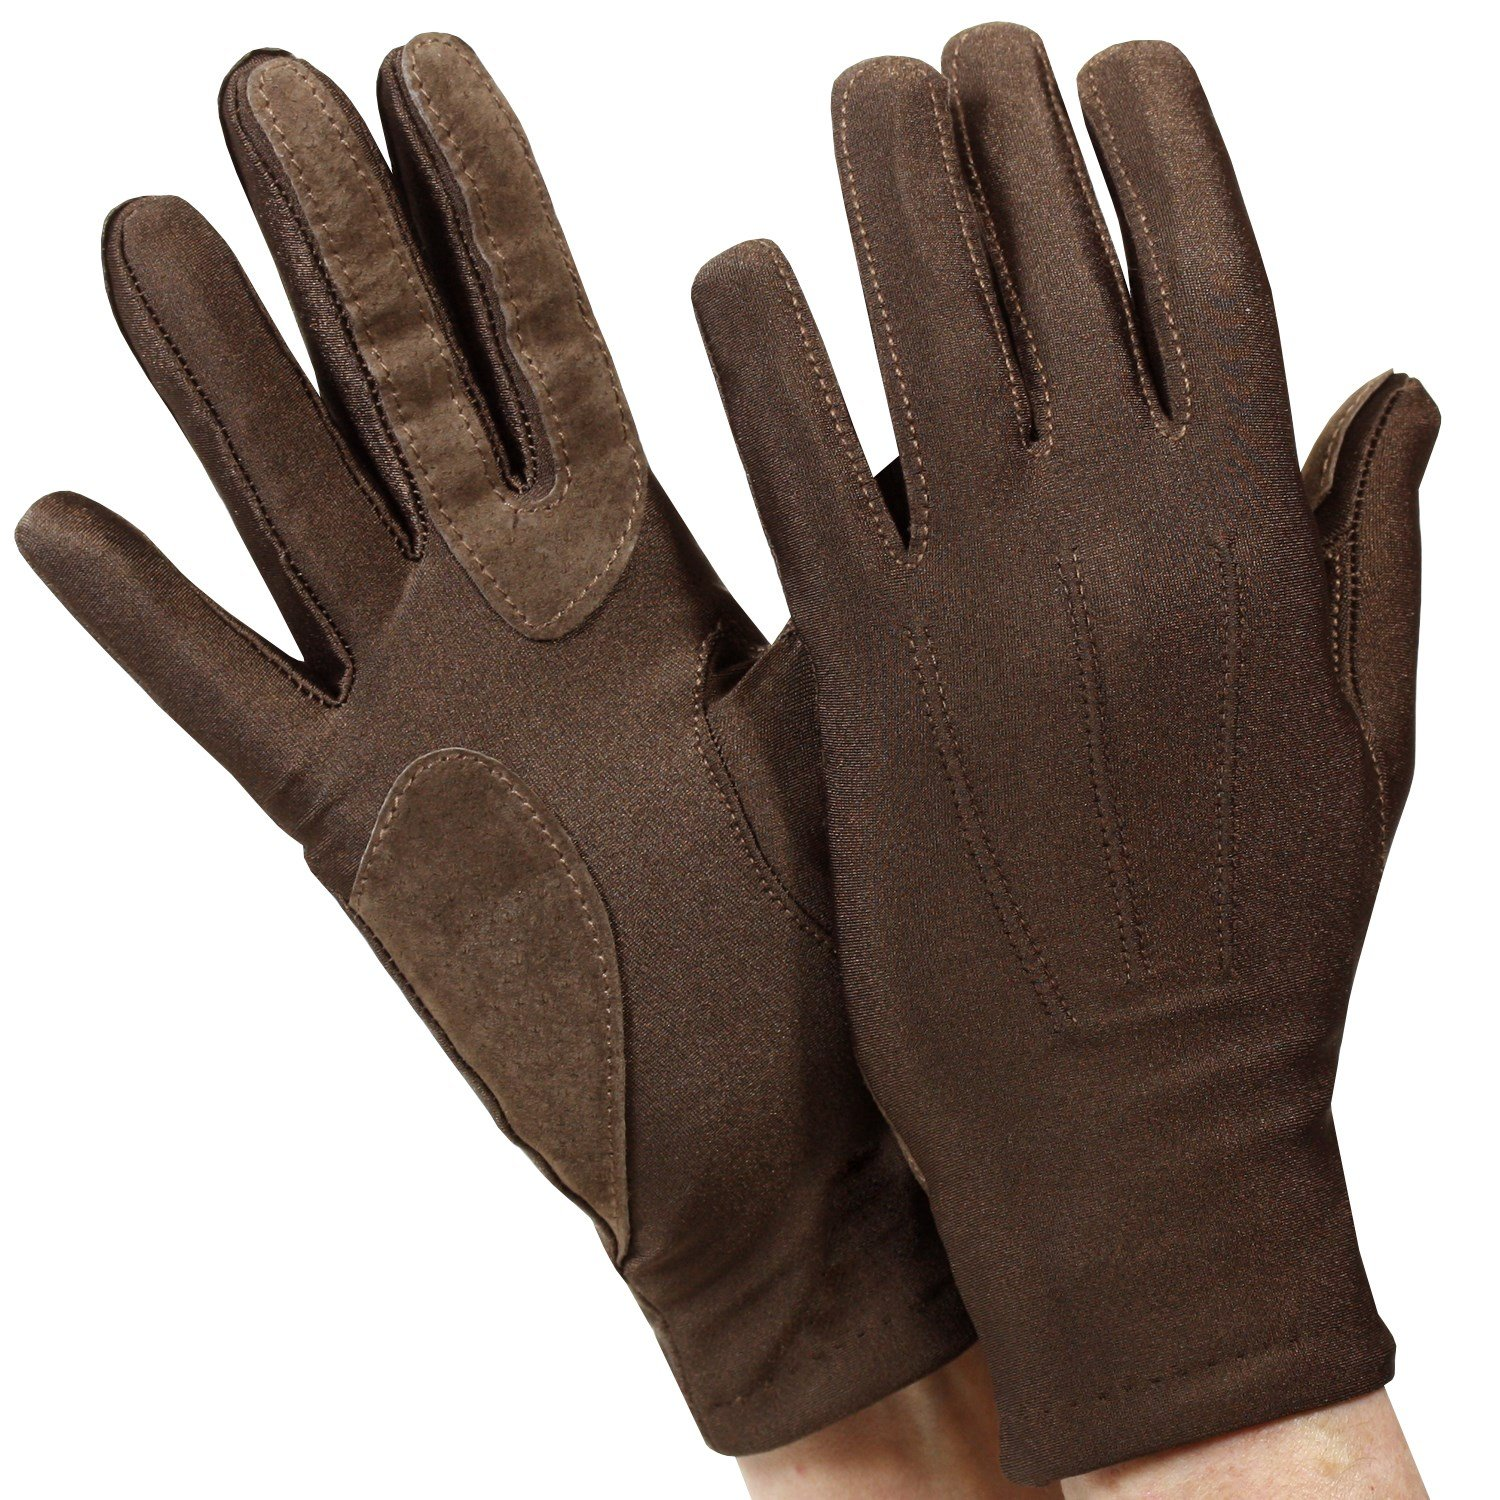 Isotoner womens leather gloves with fleece lining - Isotoner Womens Stretch Classics Fleece Lined Gloves One Size Brown At Amazon Women S Clothing Store